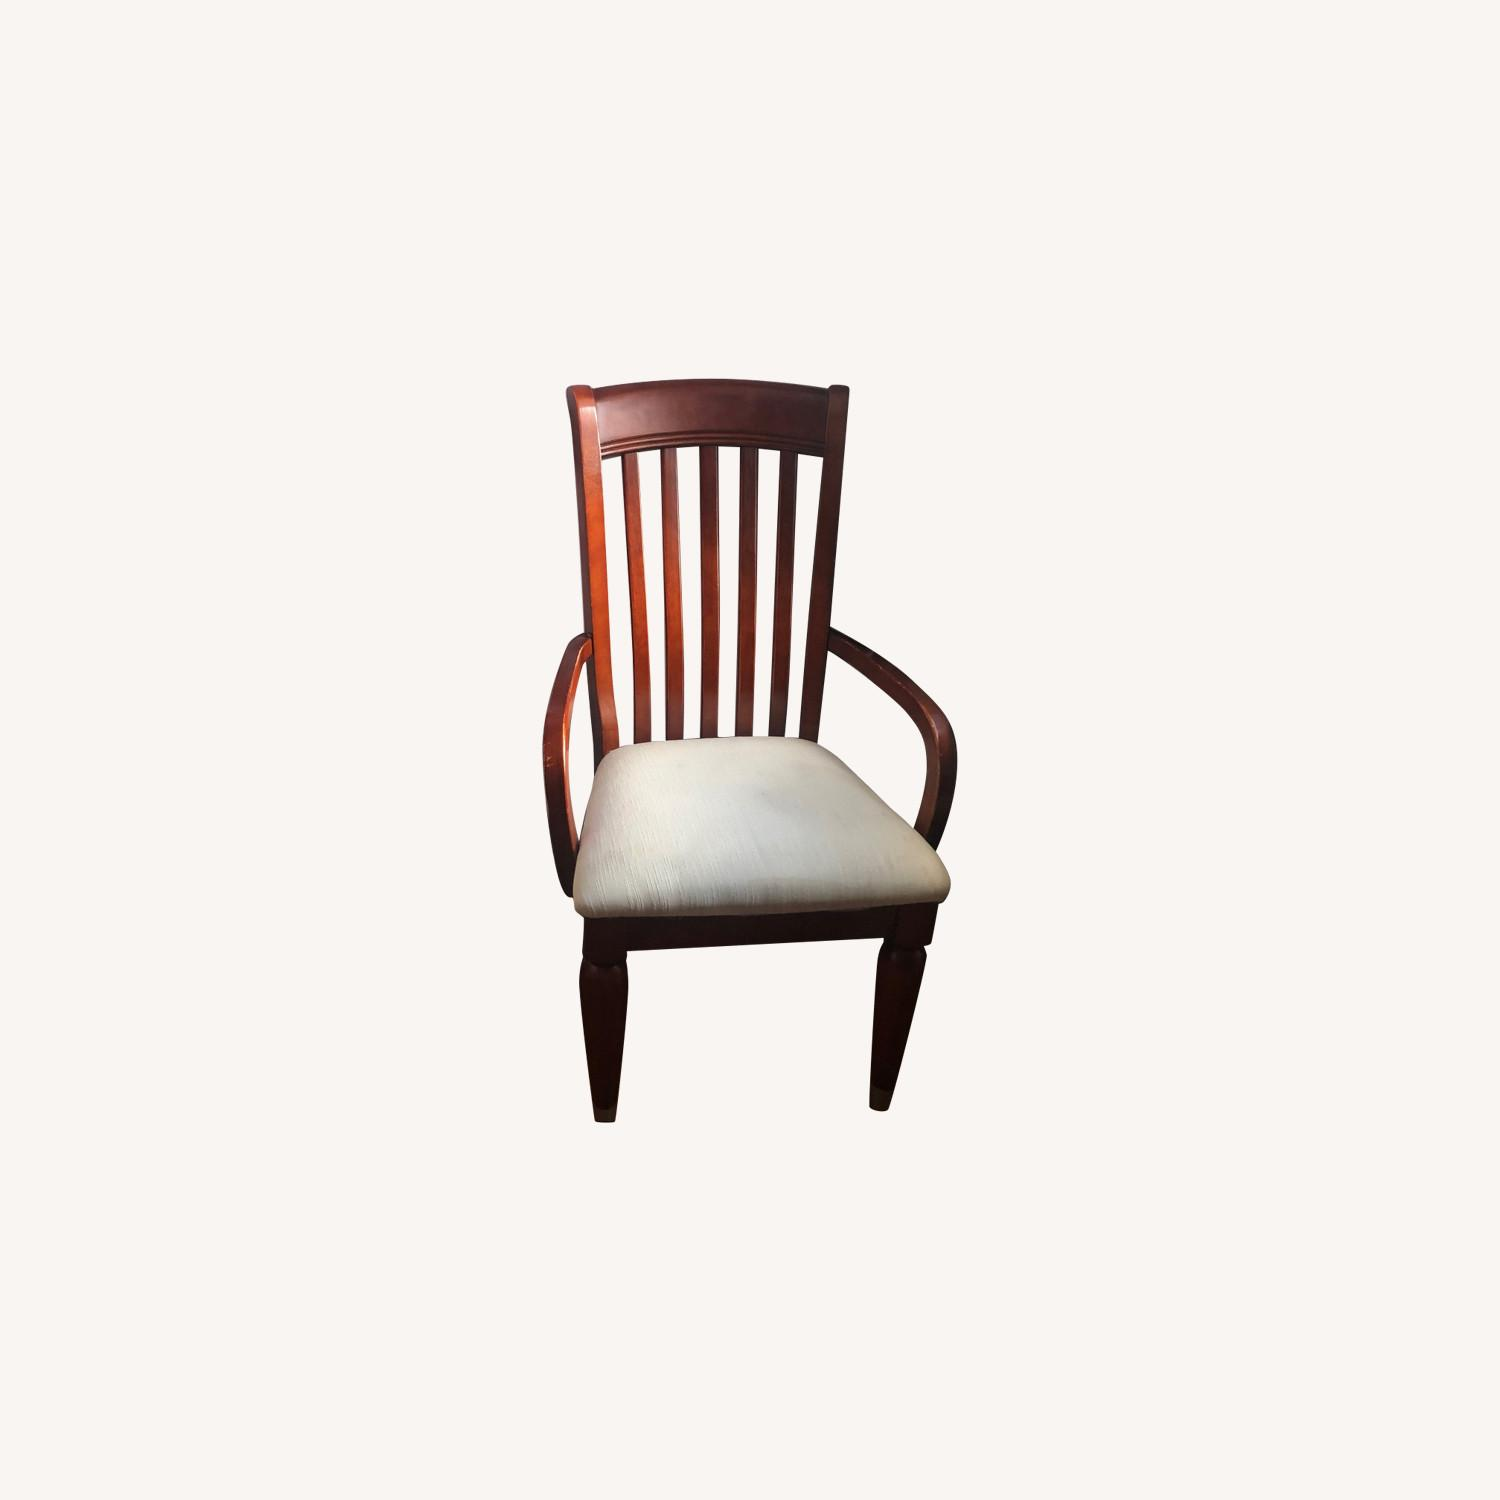 Ashley Cherry Wood Dining Chair w/ Off White Seat